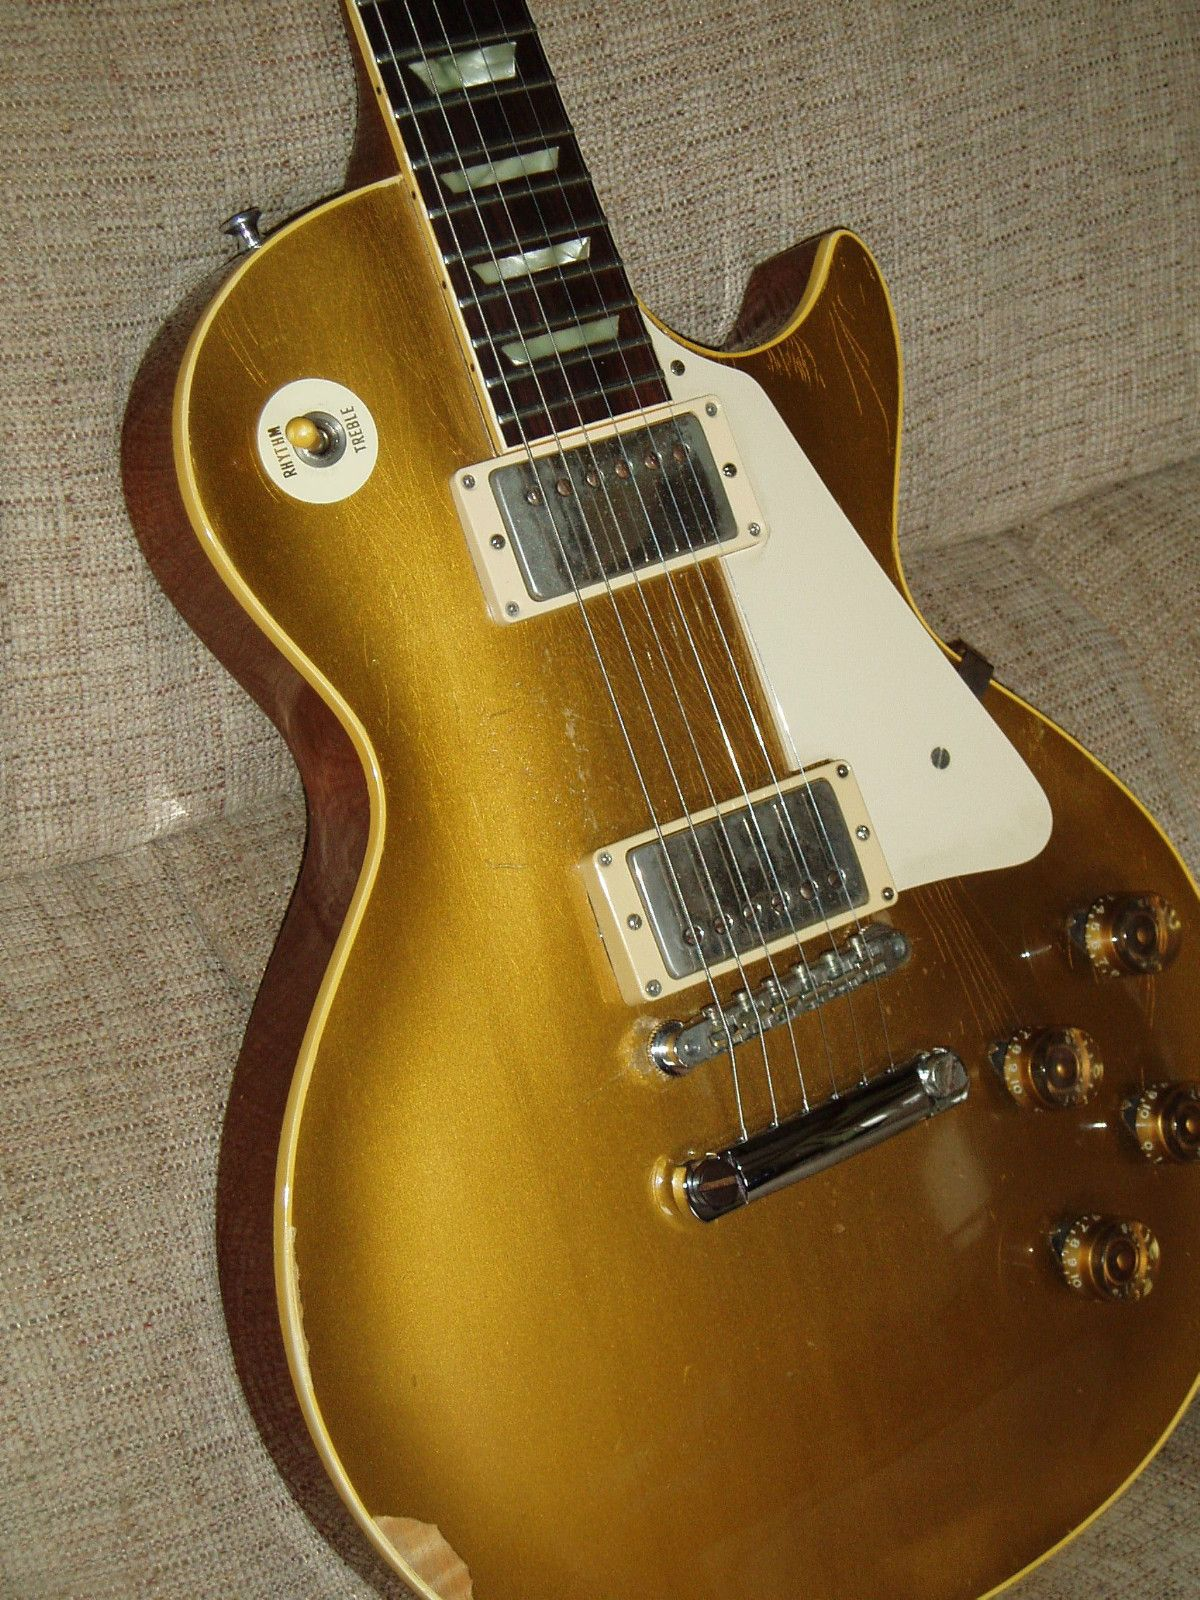 52 Conversion 58 Gibson Les Paul Gold Top Stop Tail Paf Vintage 1958 Wiring Diagram Unique Guitars